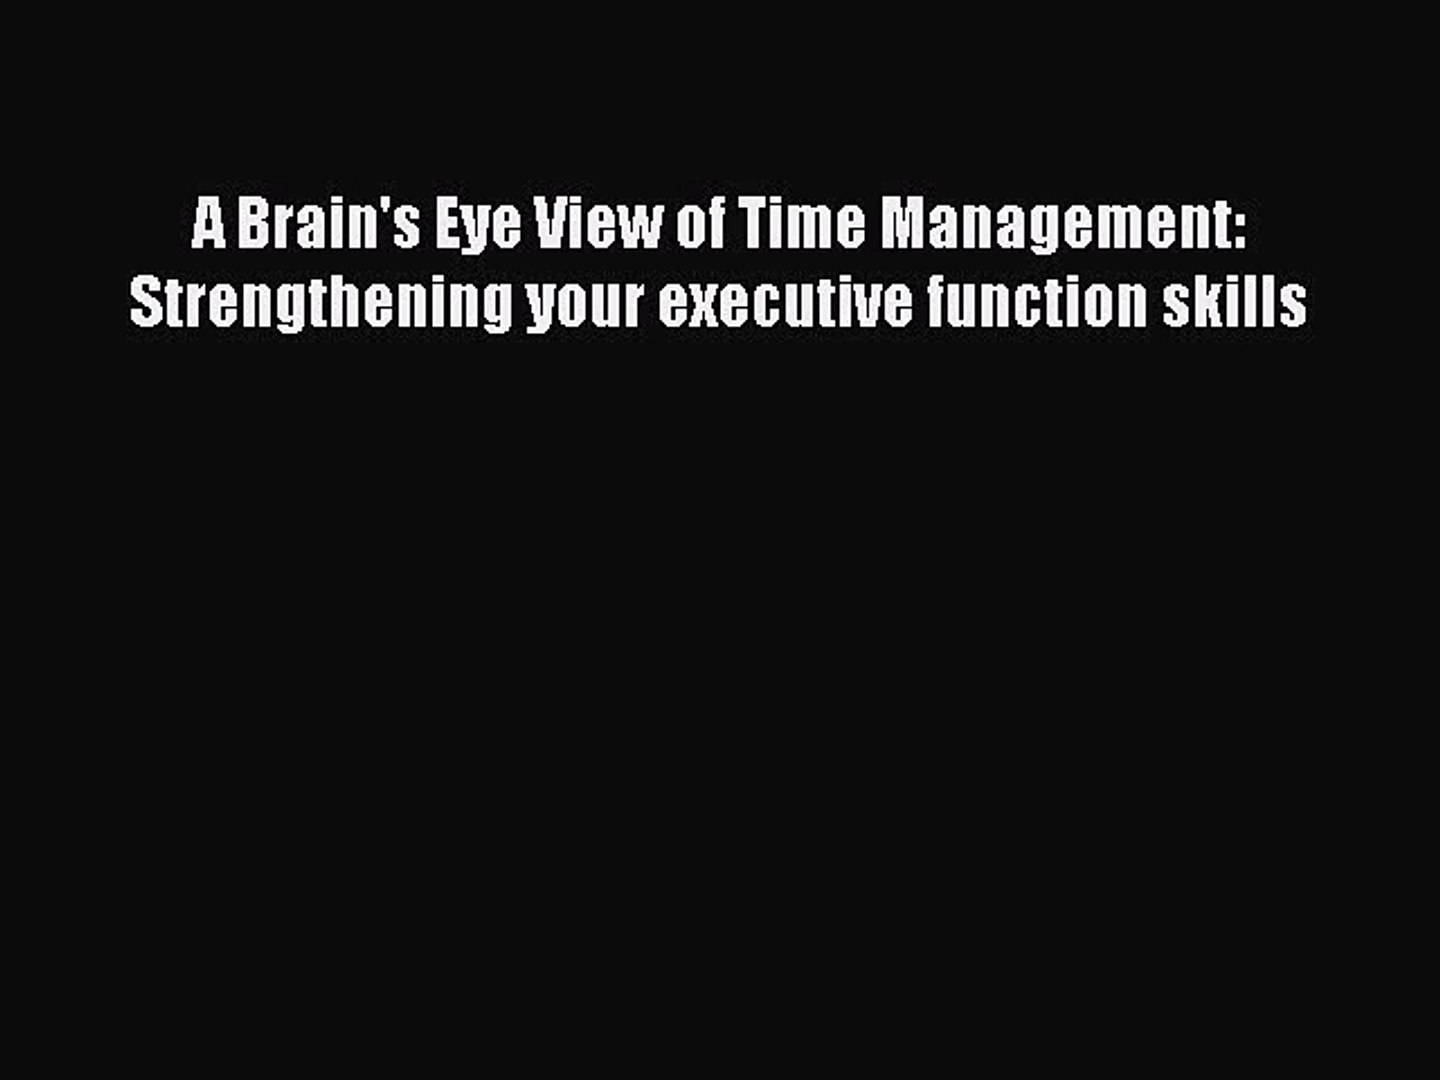 Strengthening Executive Function >> Read A Brain S Eye View Of Time Management Strengthening Your Executive Function Skills Ebook